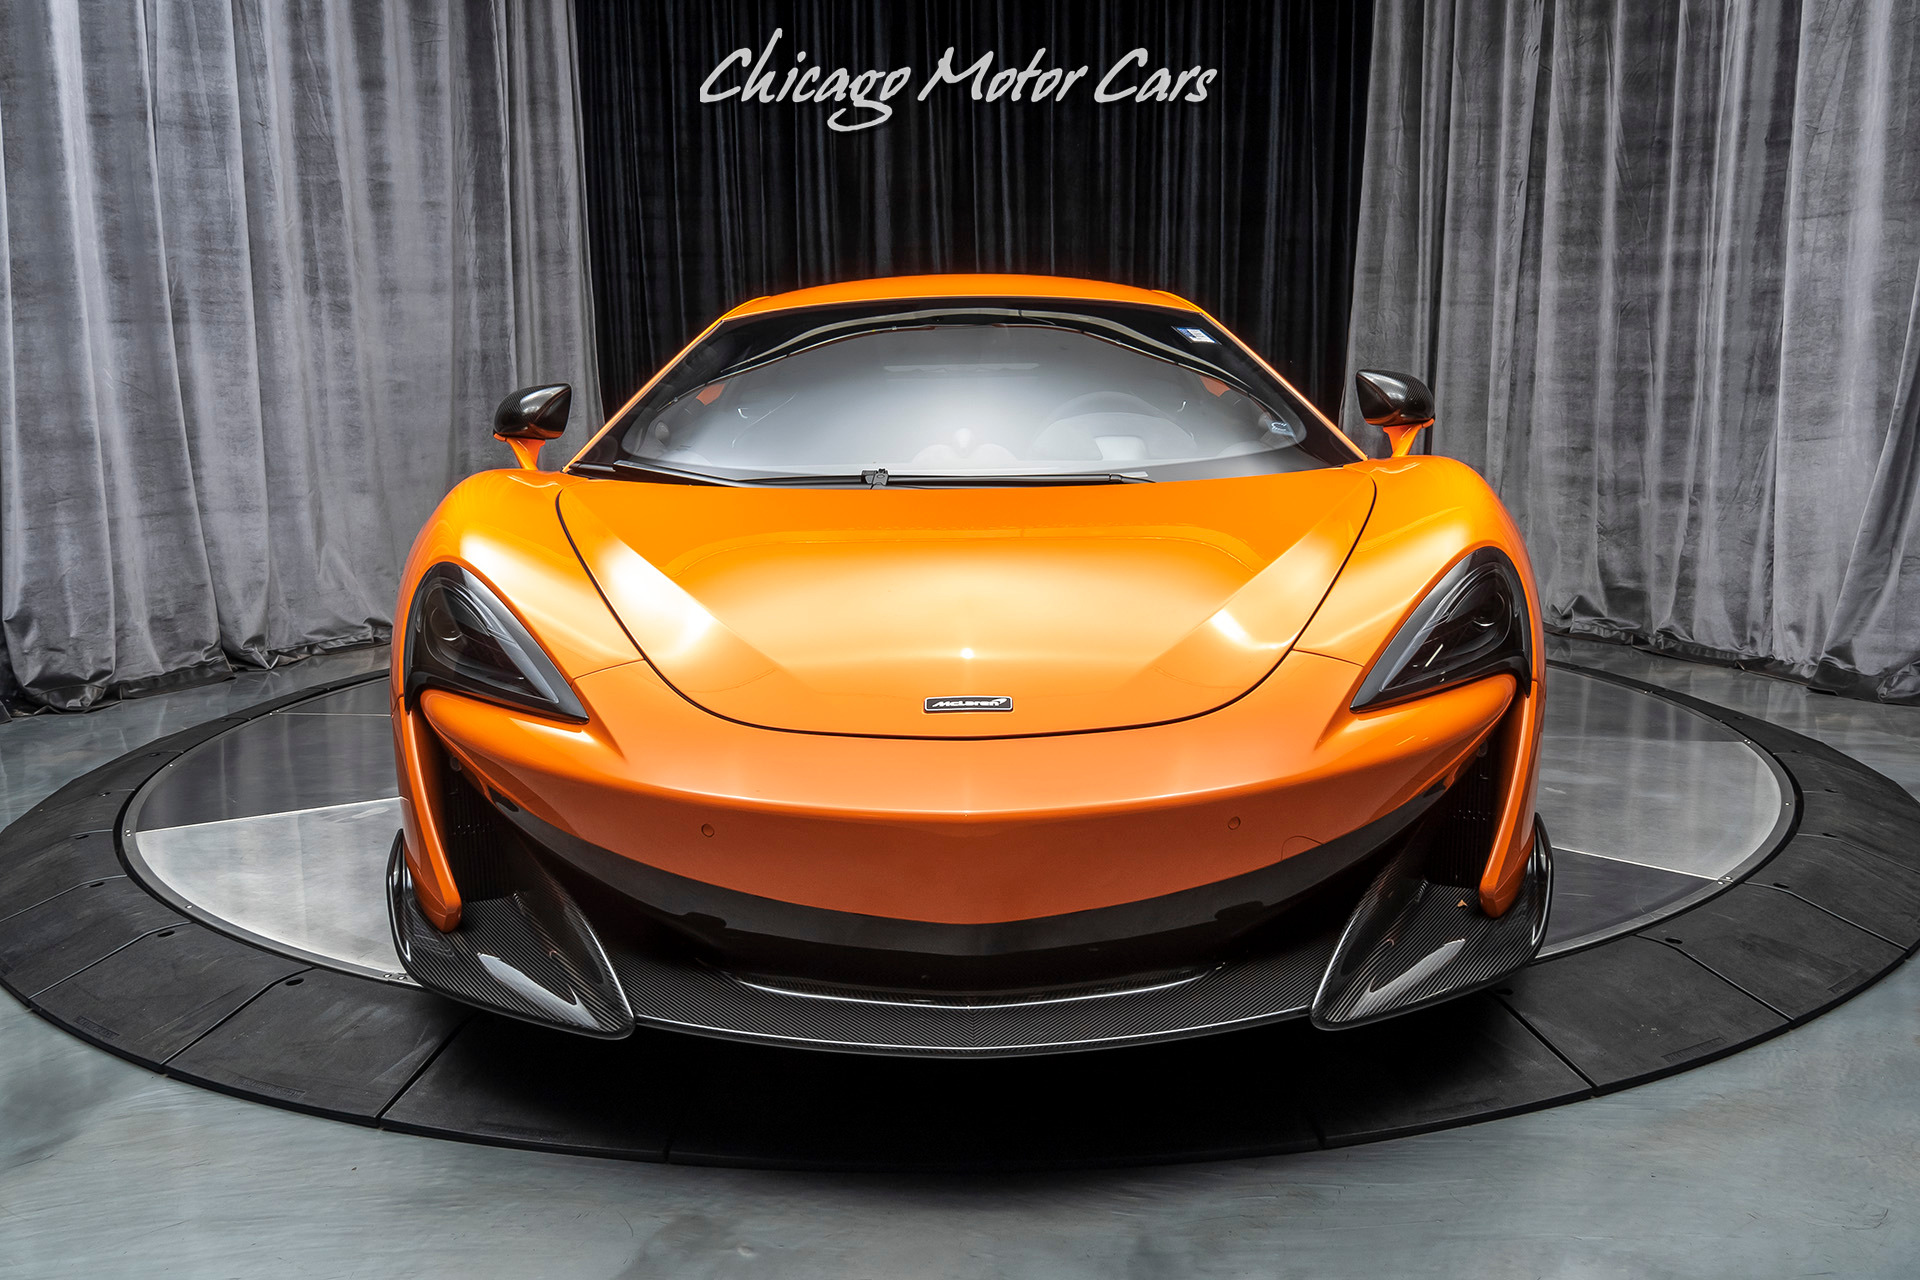 Used-2019-McLaren-600LT-Coupe-LIGHTWEIGHT-SENNA-RACING-SEATS--LOADED-wCARBON-FIBER